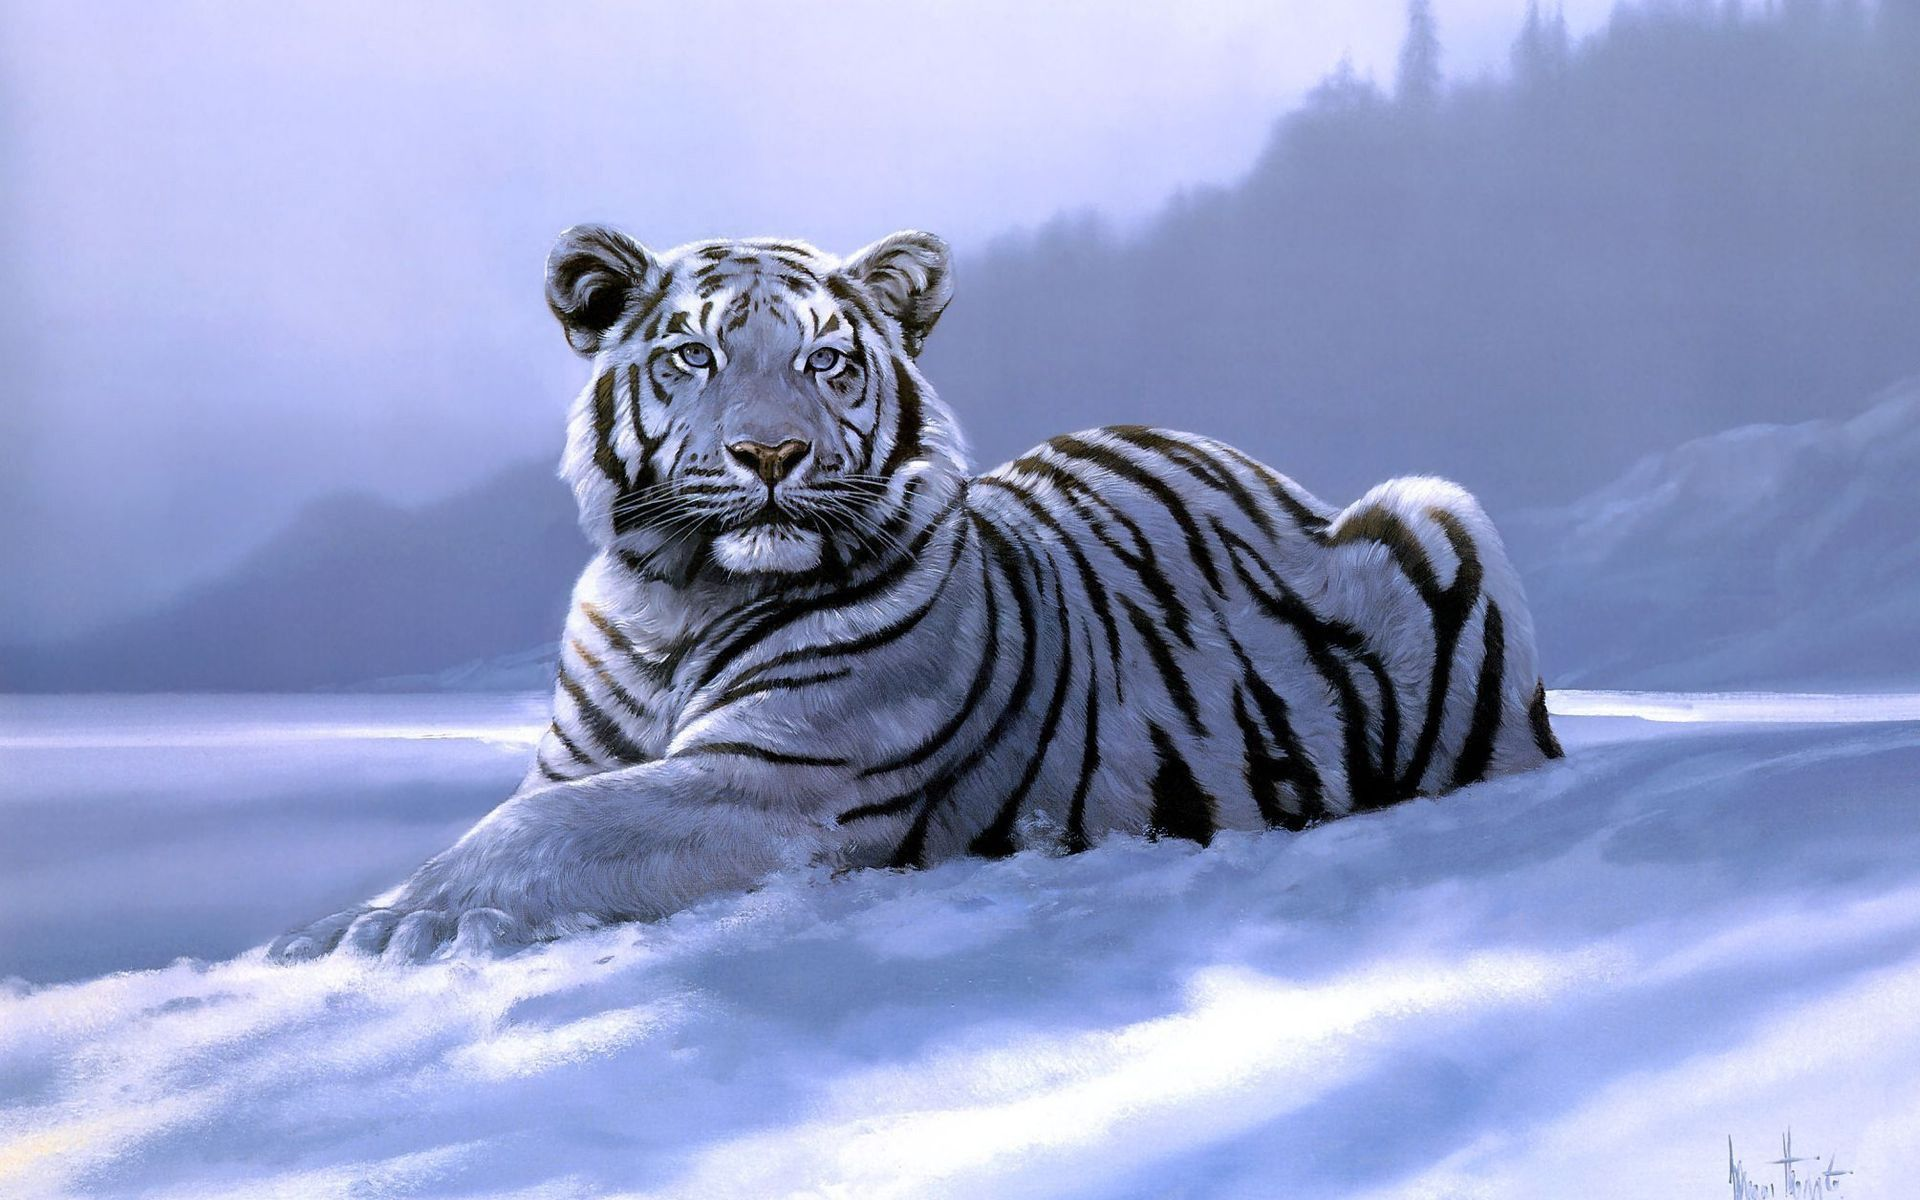 Tiger Wallpaper Android Apps on Google Play 1920×1080